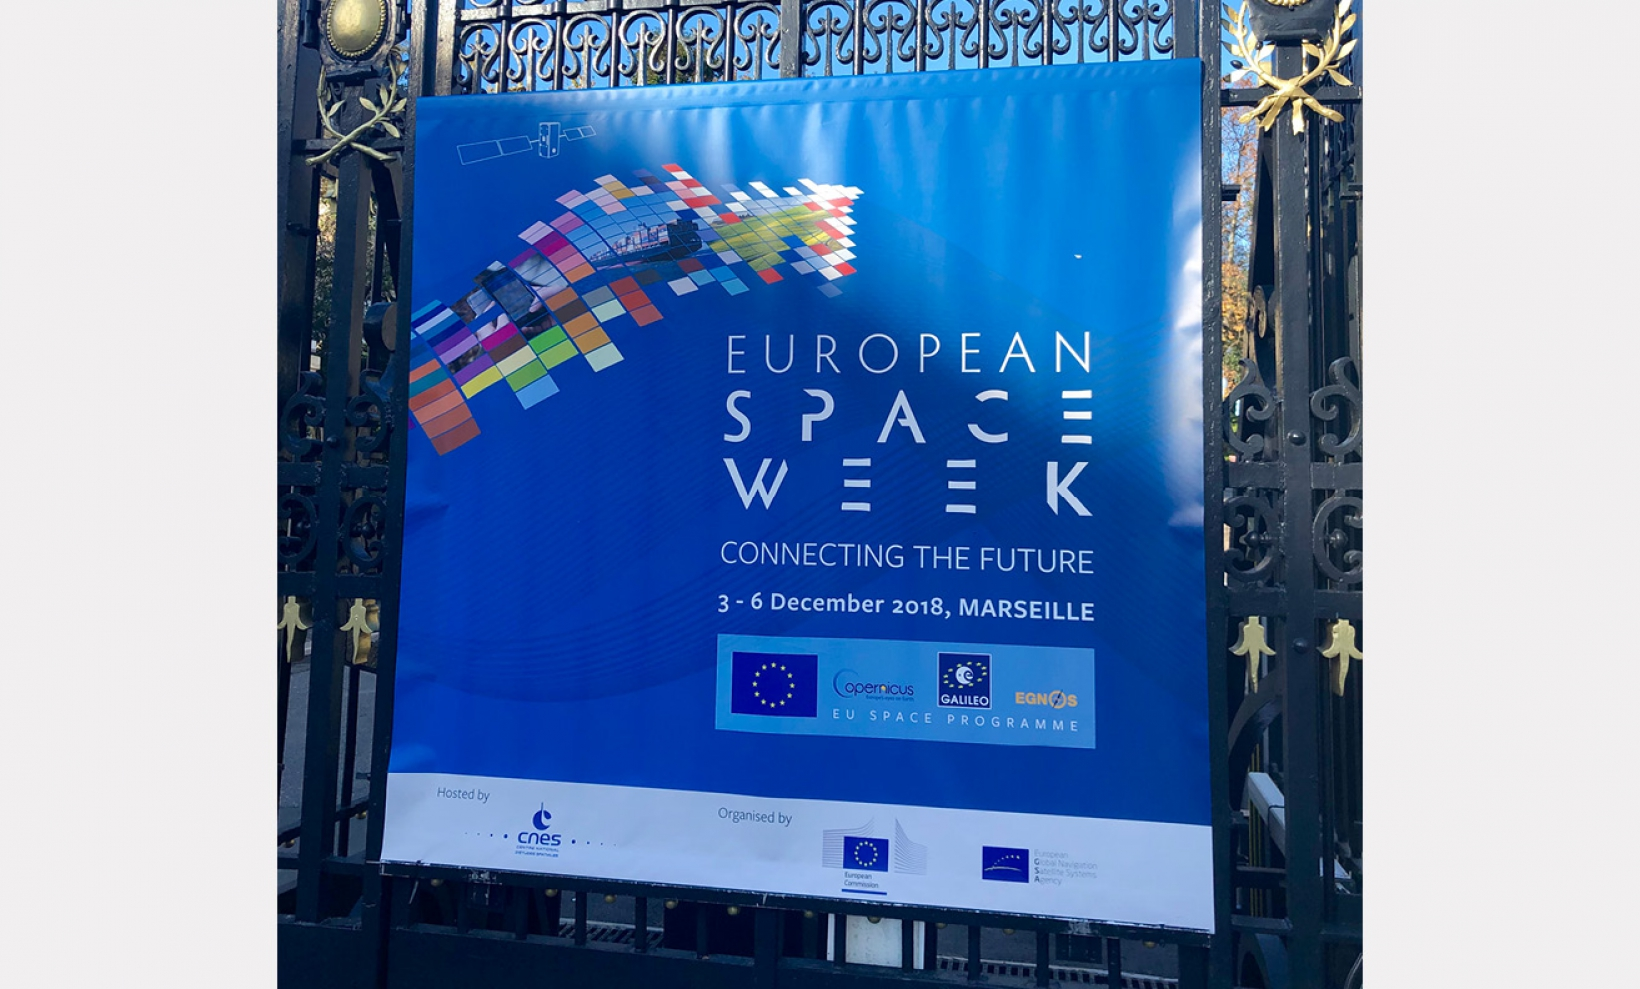 The EU Space Week plenary gathered speakers from industry and the public sector to discuss how European Satellite Navigation and Earth Observation are tackling today's economic, social, and environmental challenges.